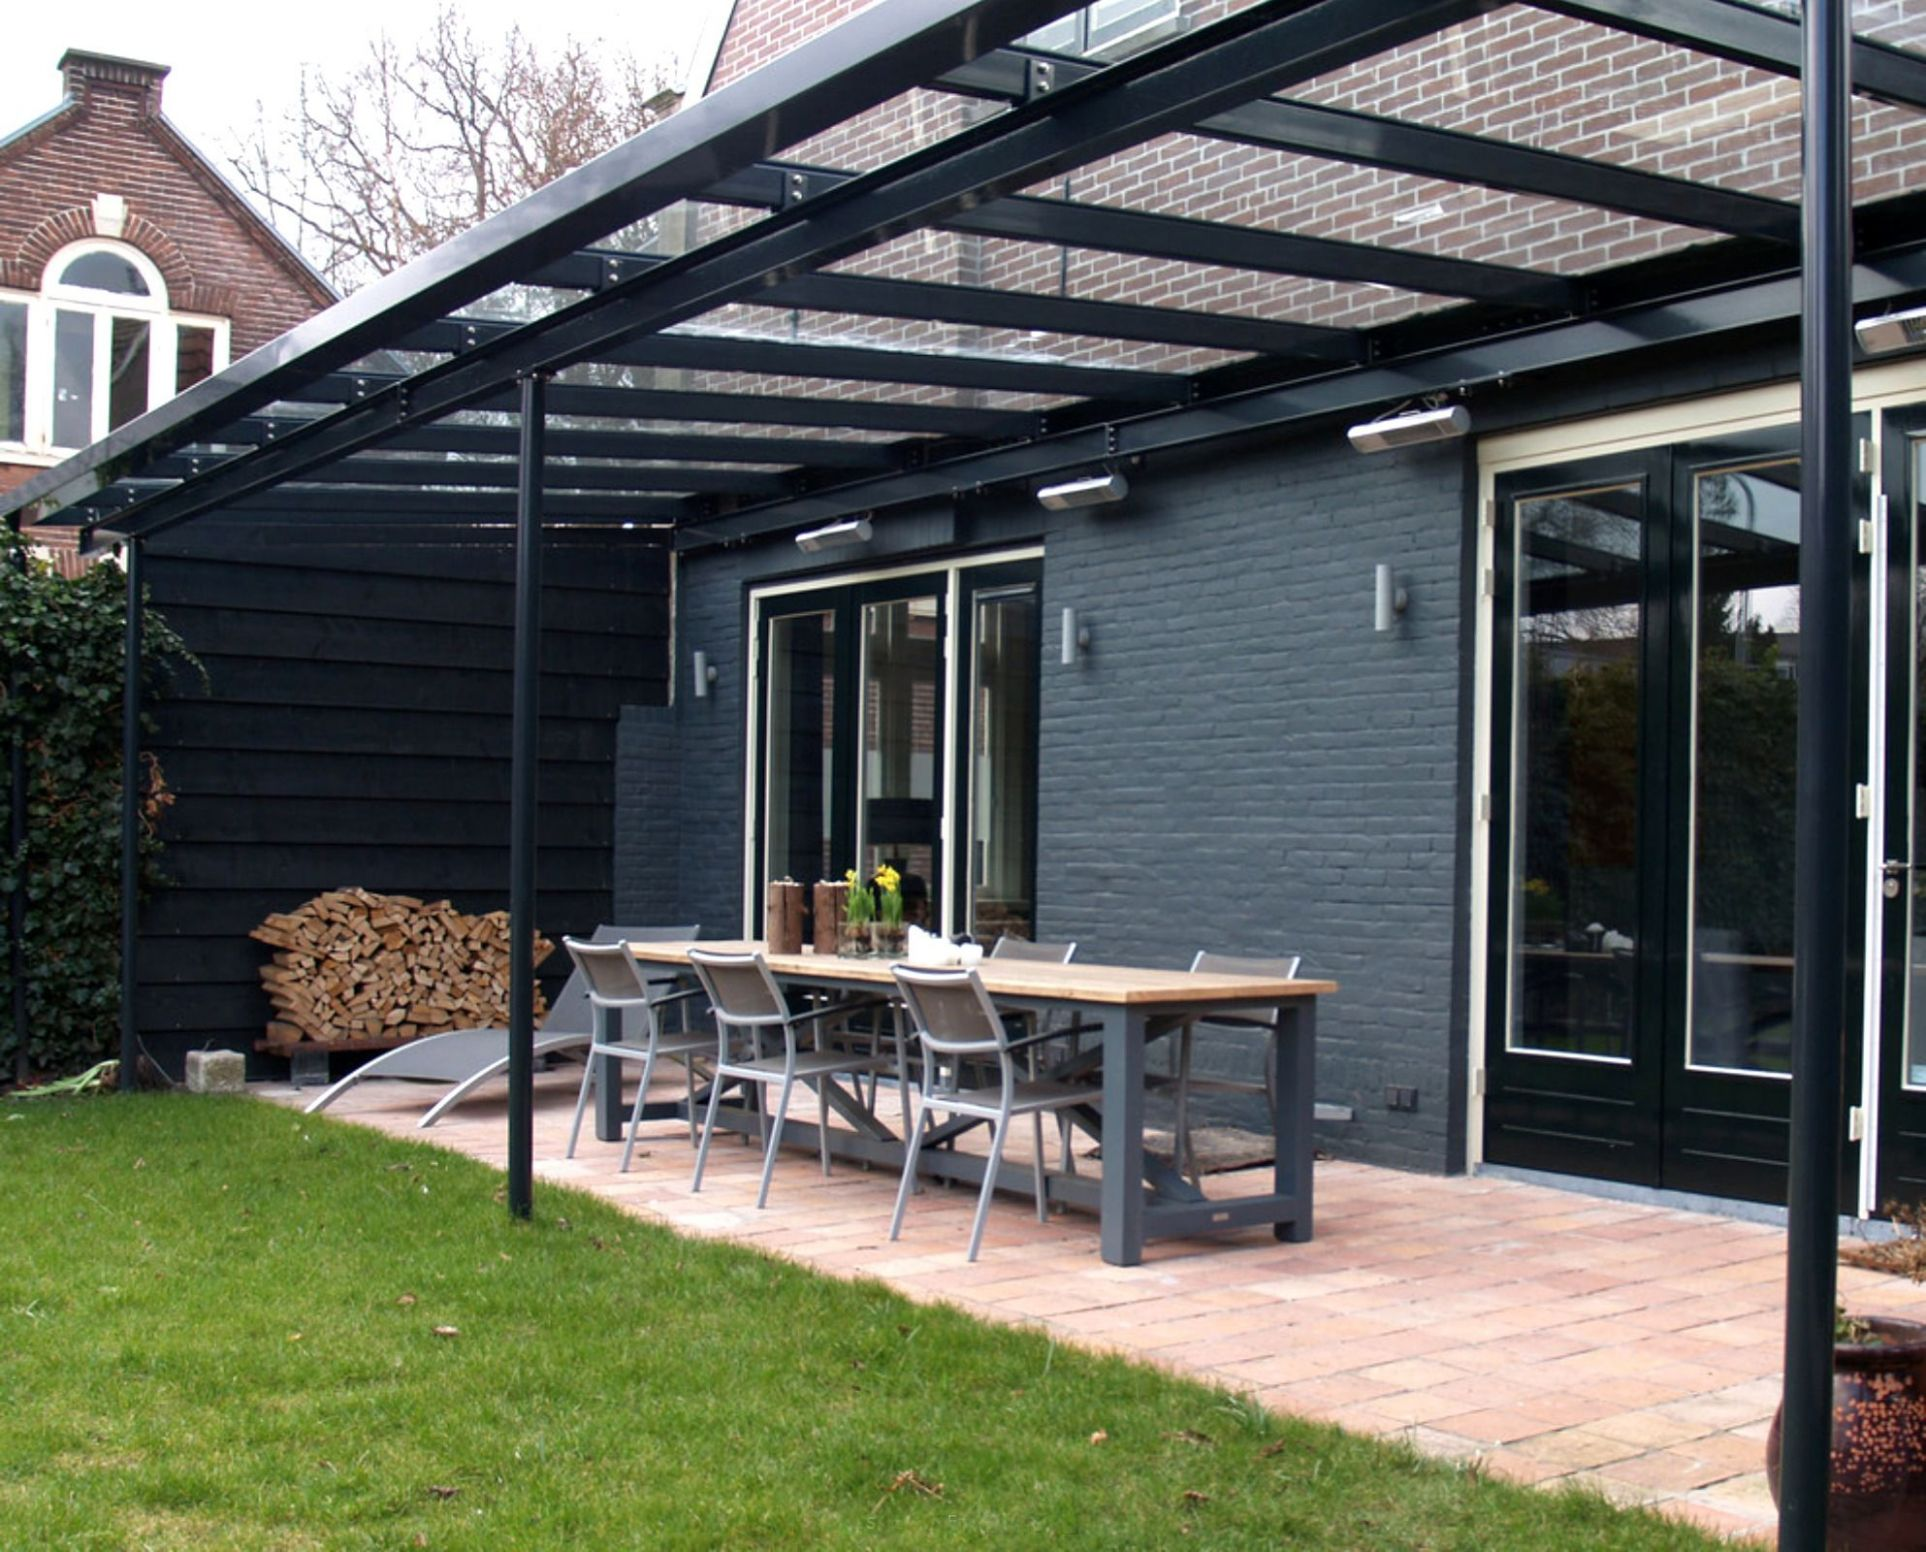 11 Stylish Covered Patio Ideas